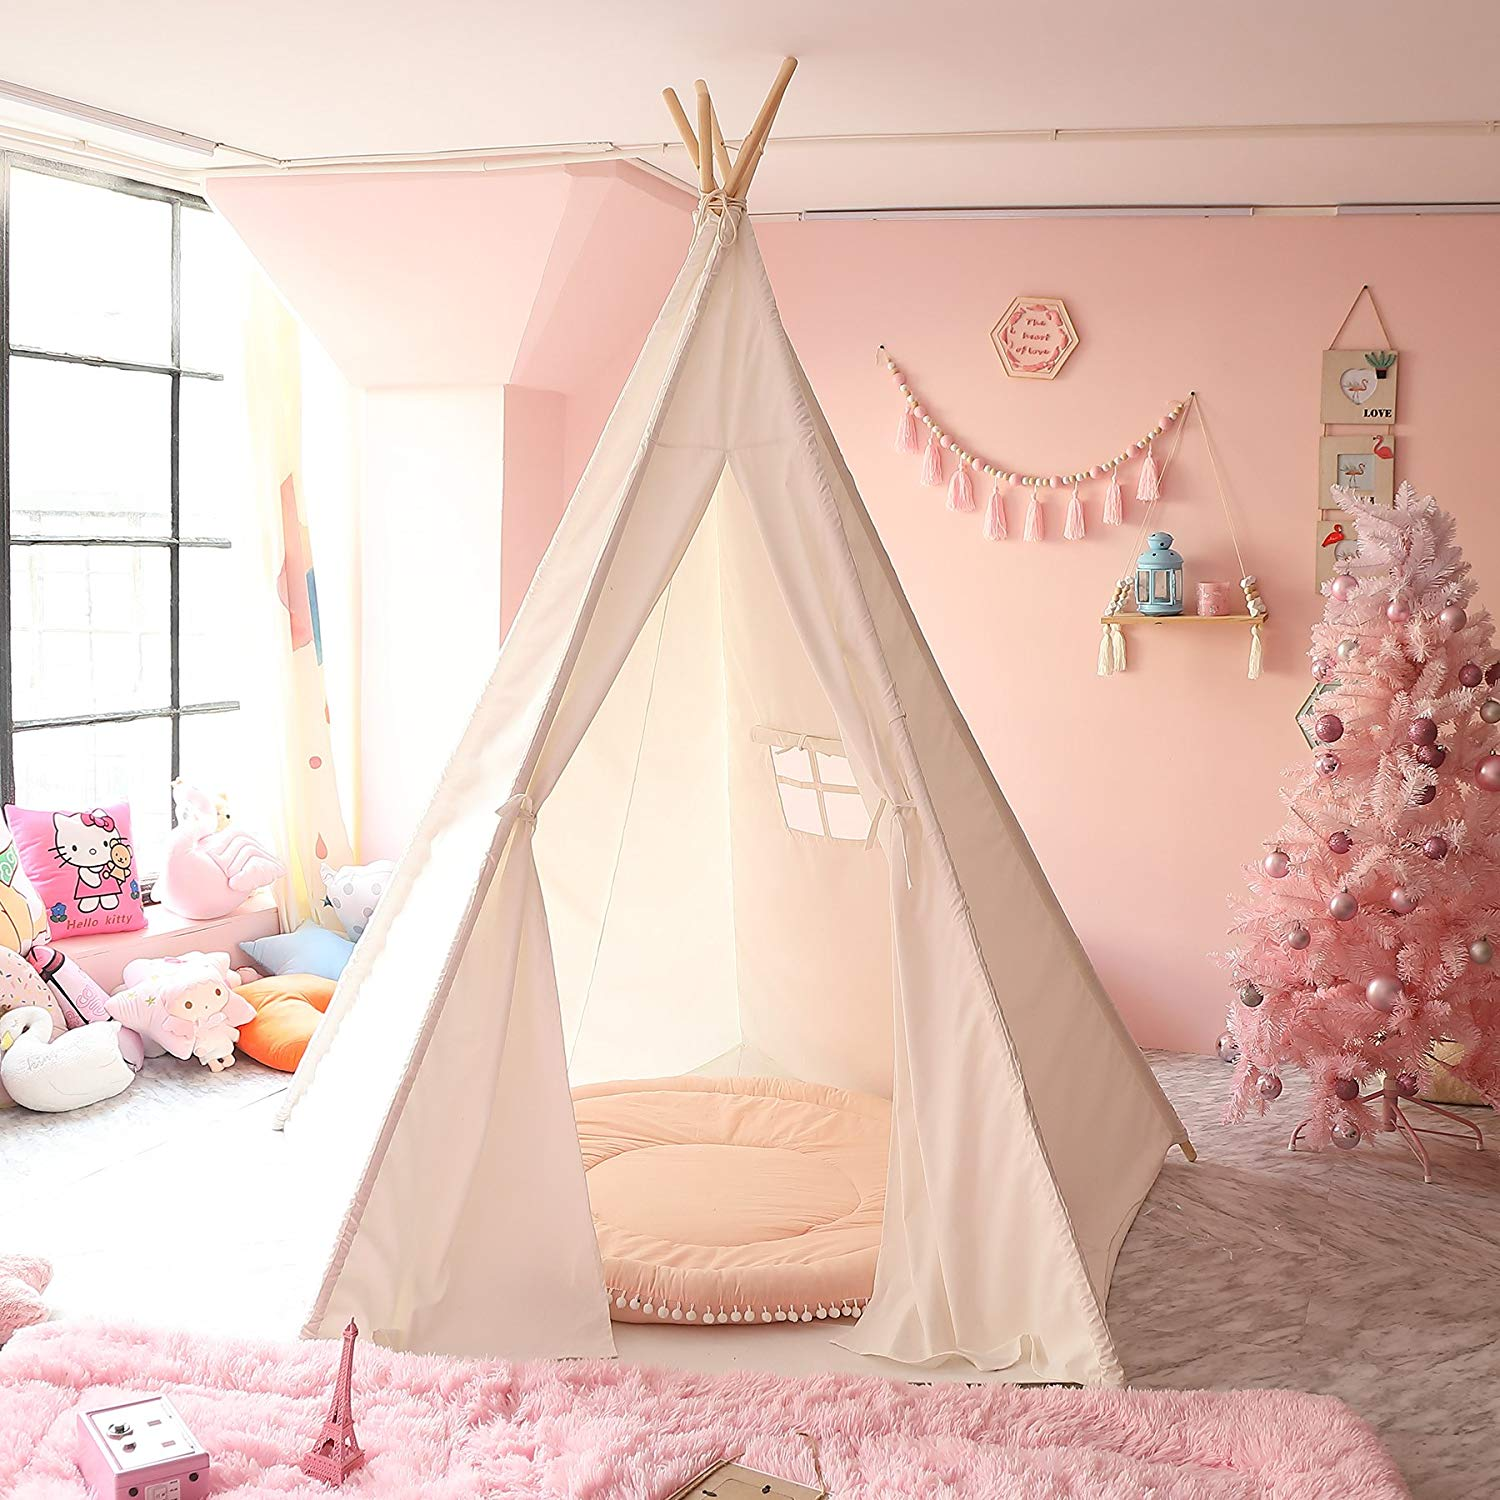 CO-Z Teepee Play Tent Foldable for Kids with Banners